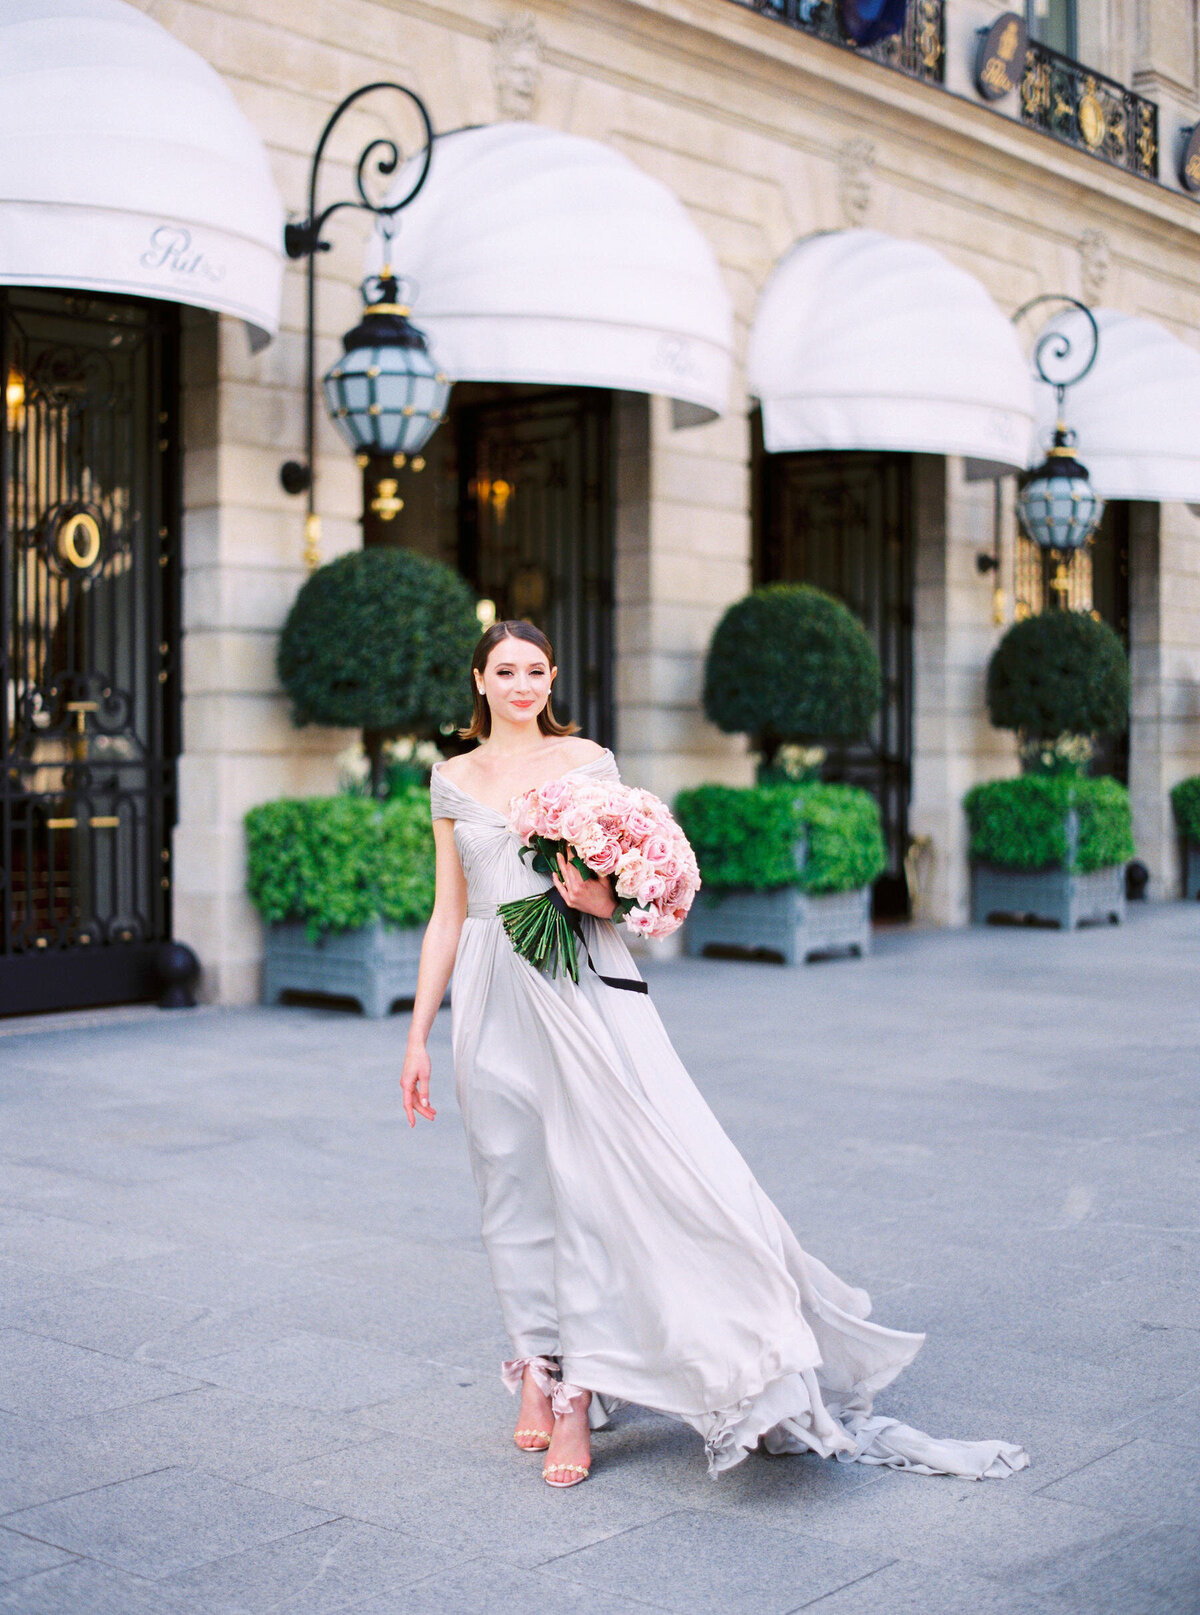 wedding-photographer-in-ritz-paris (12 of 29)